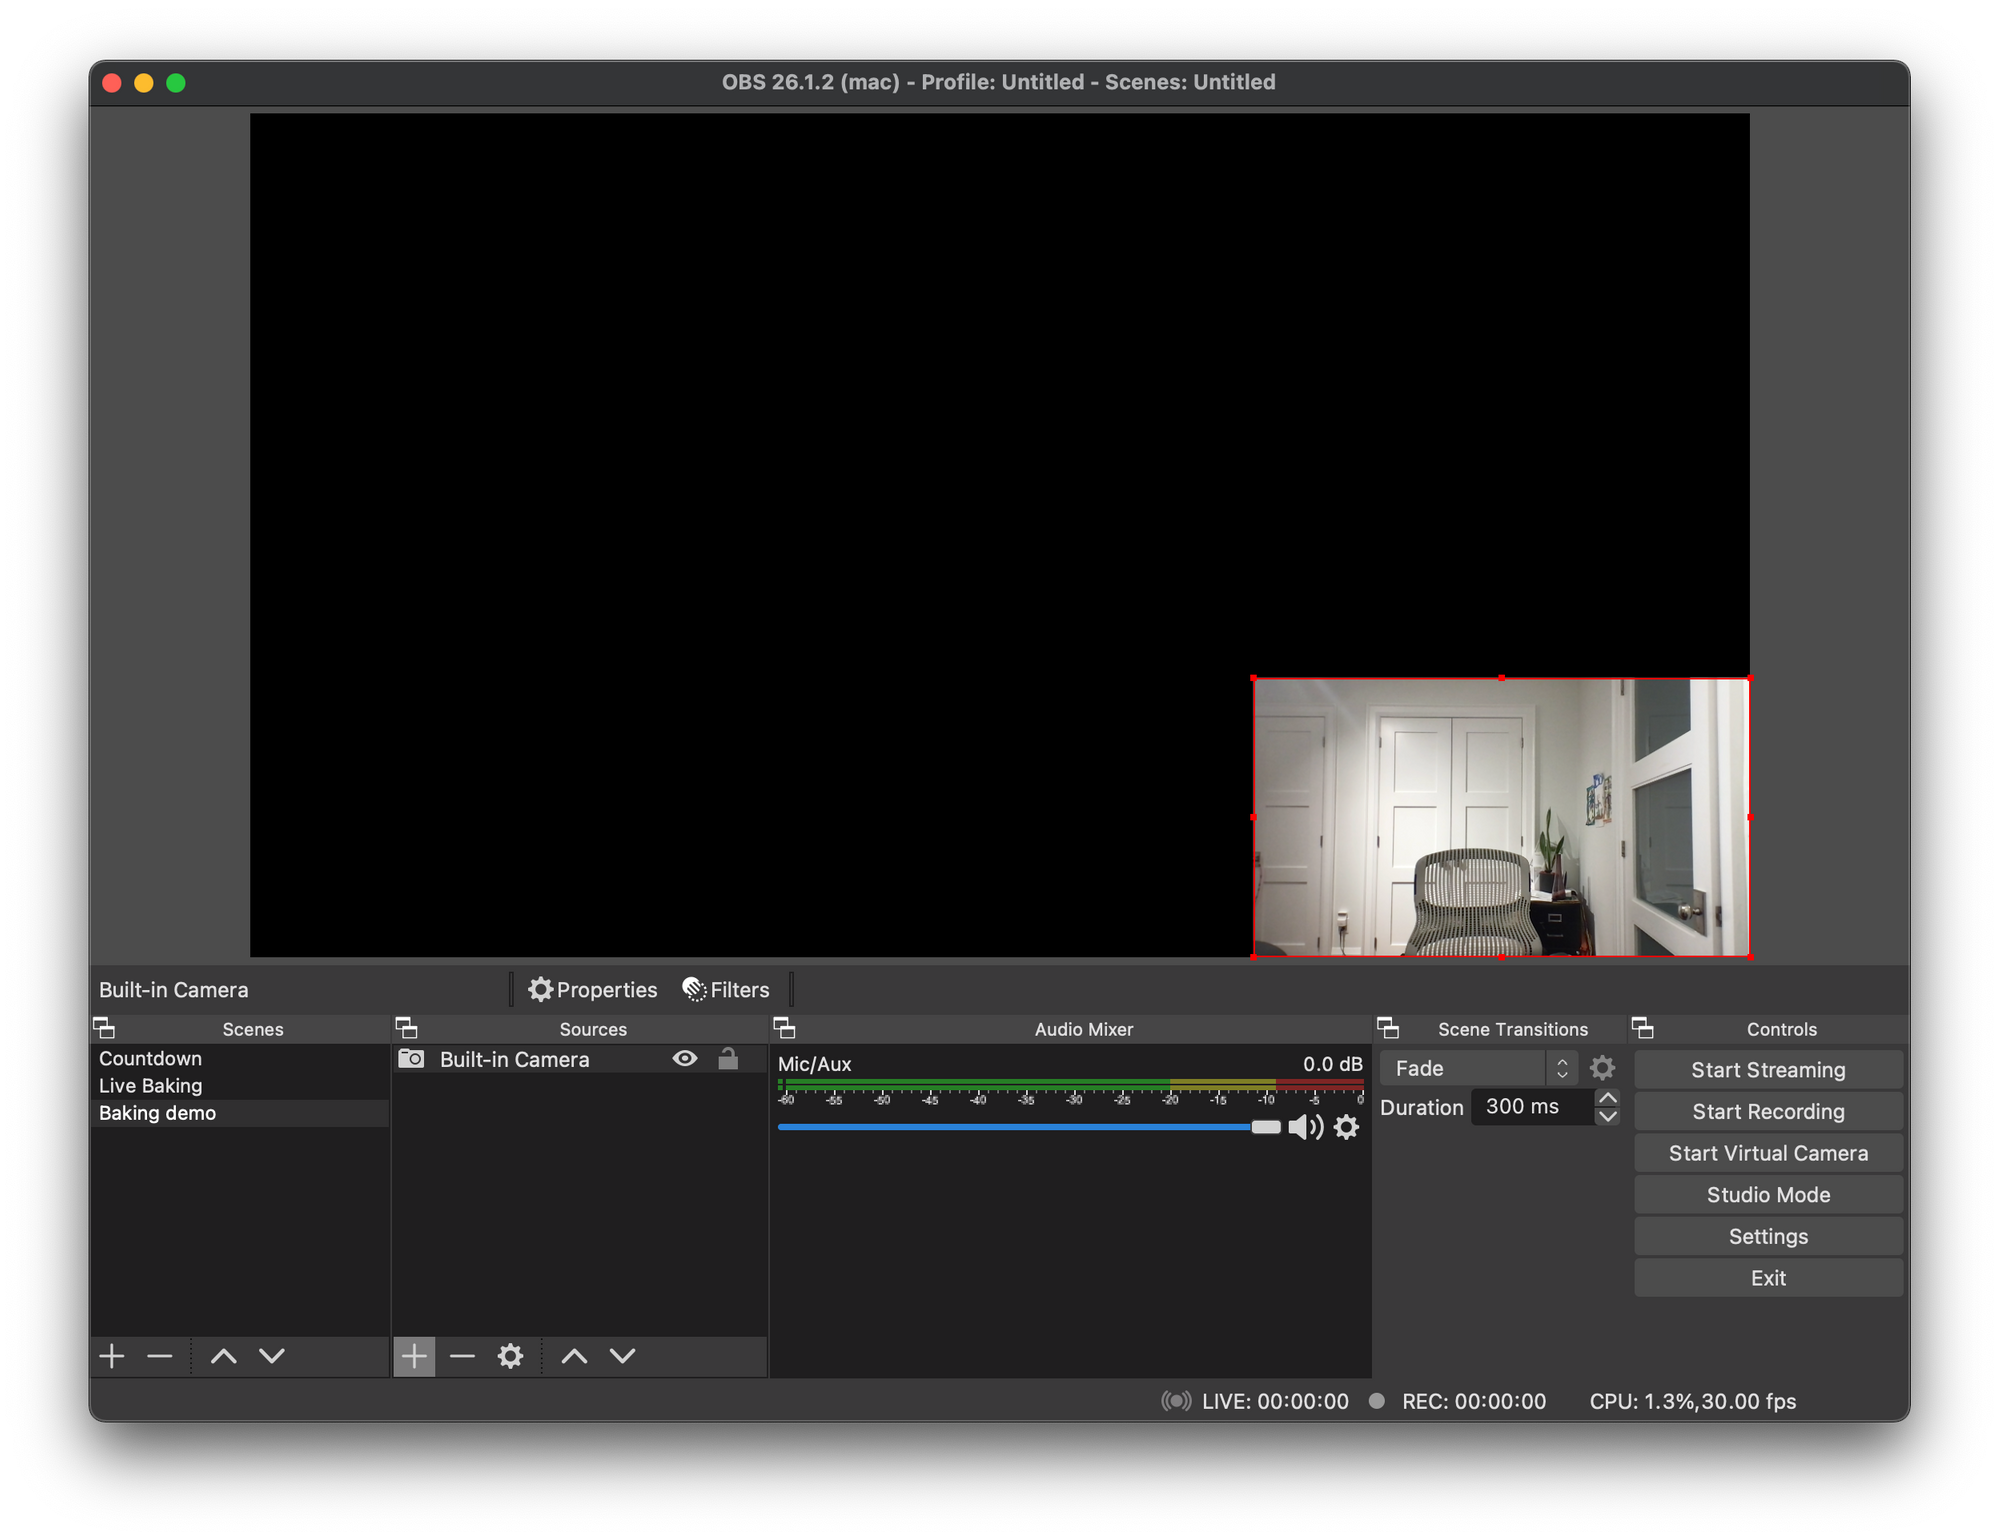 OBS scene with one video source, the built-in camera